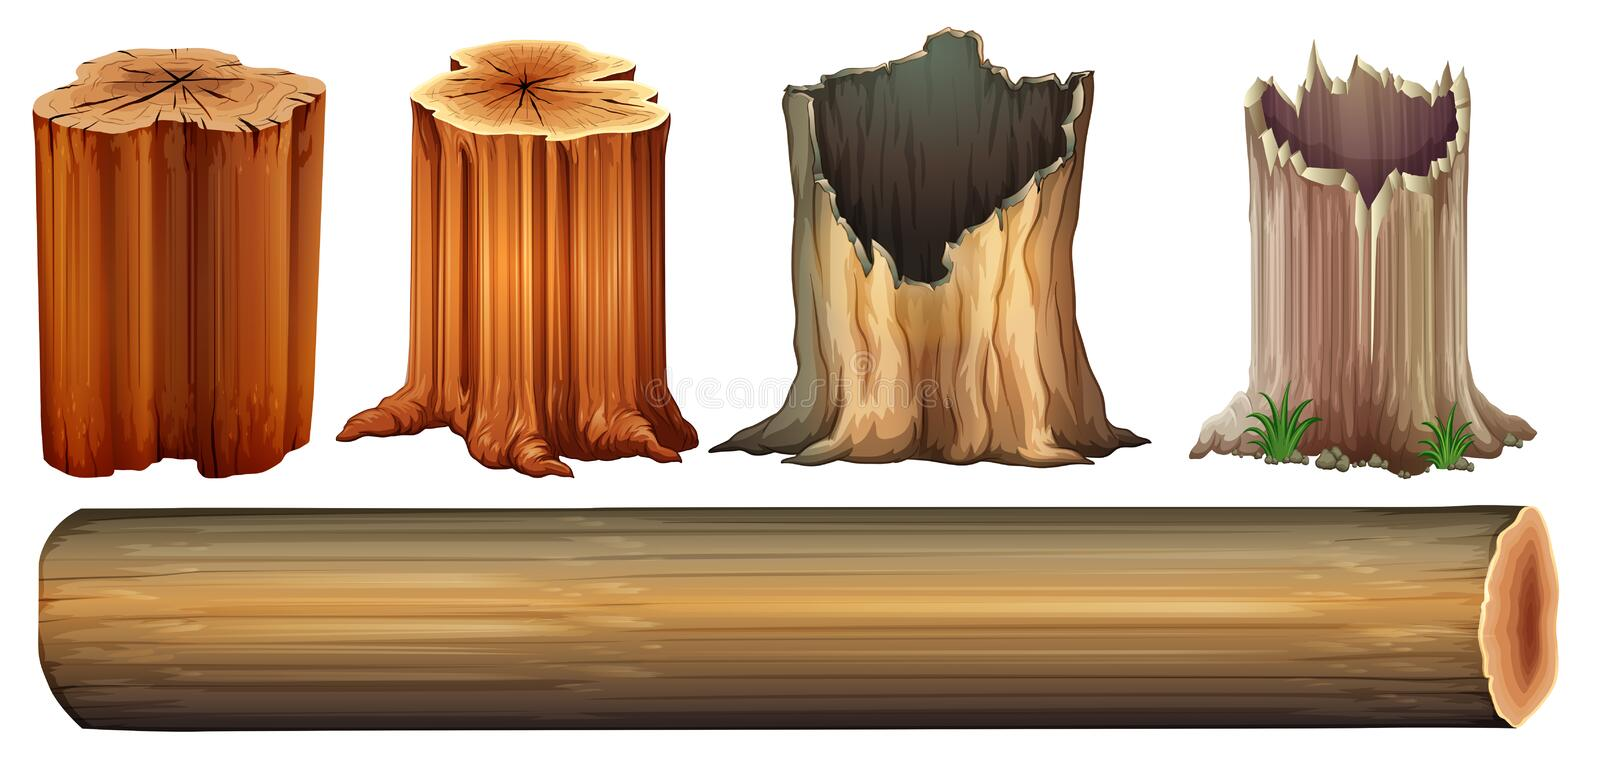 A log and tree stumps vector illustration